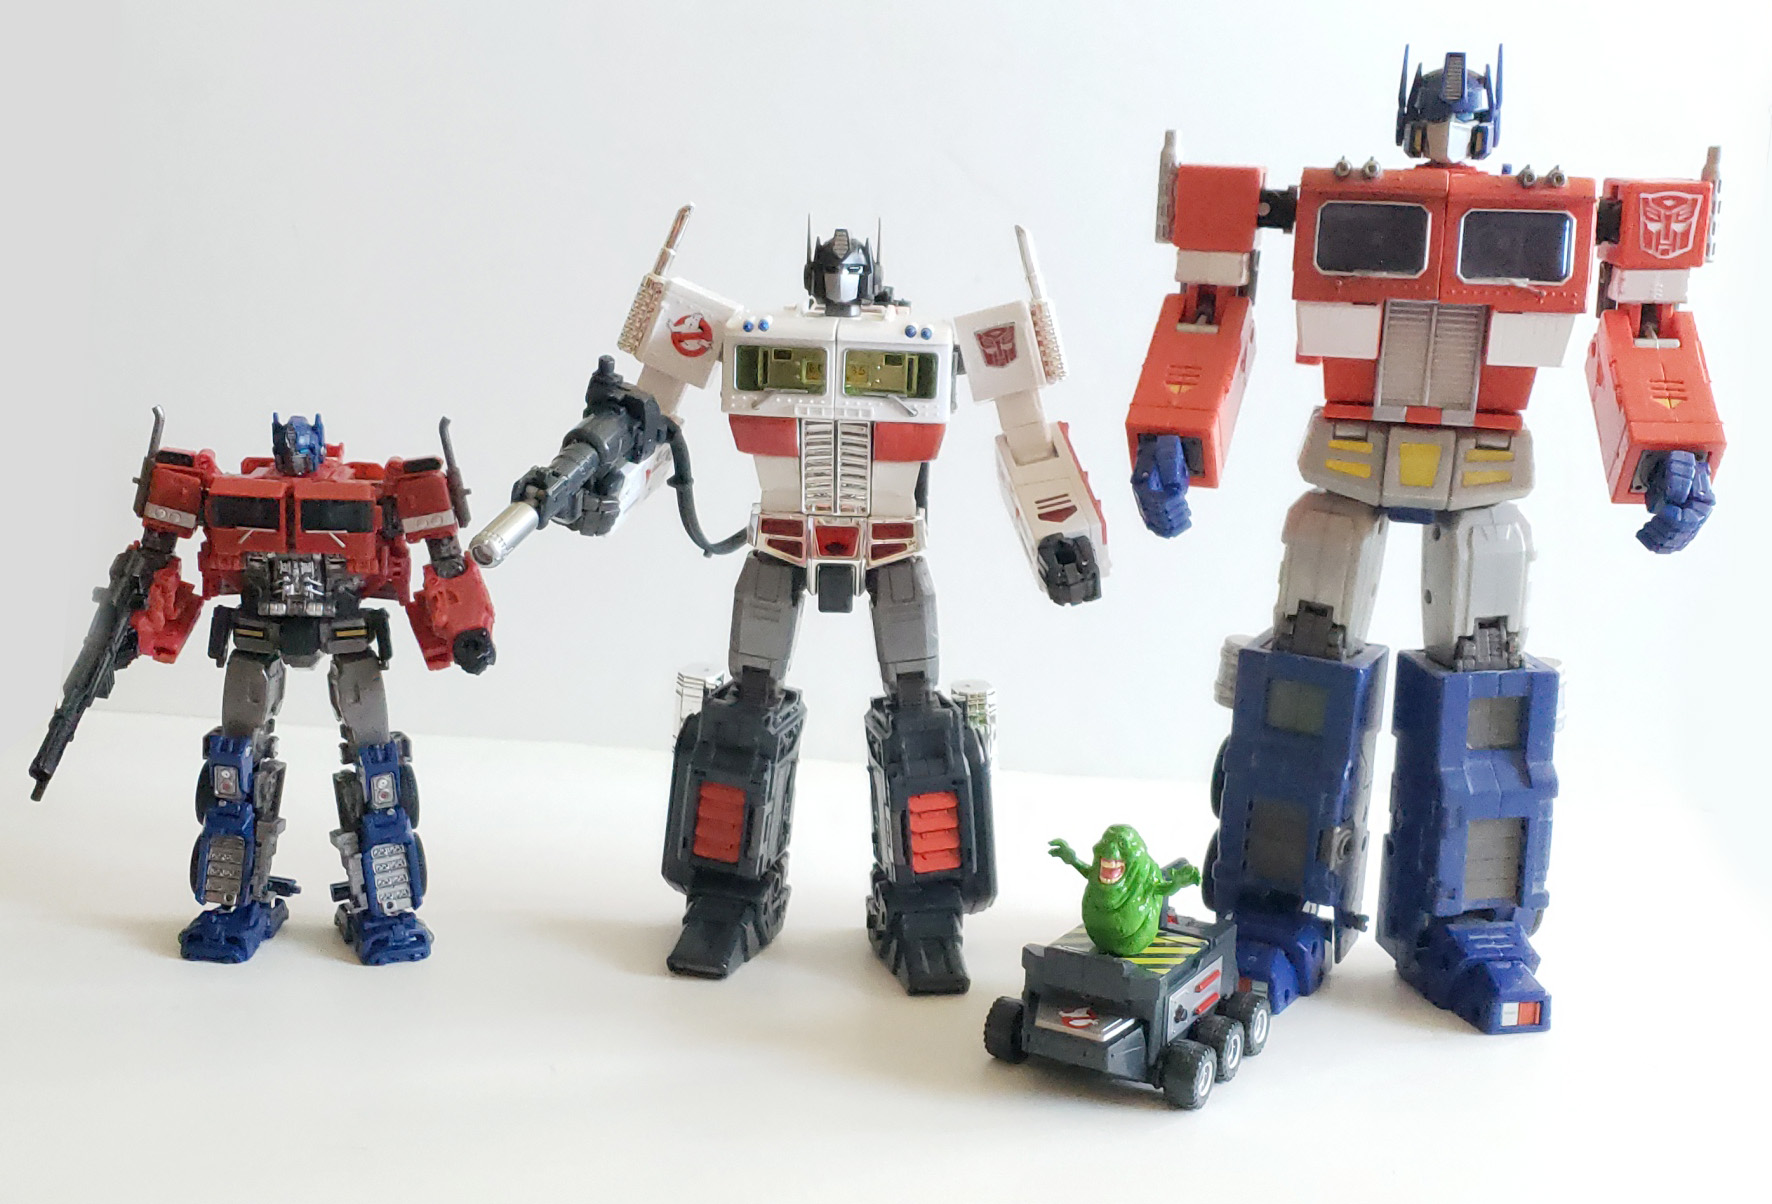 Transformers Ghostbusters Optimus Prime SDCC - front 04